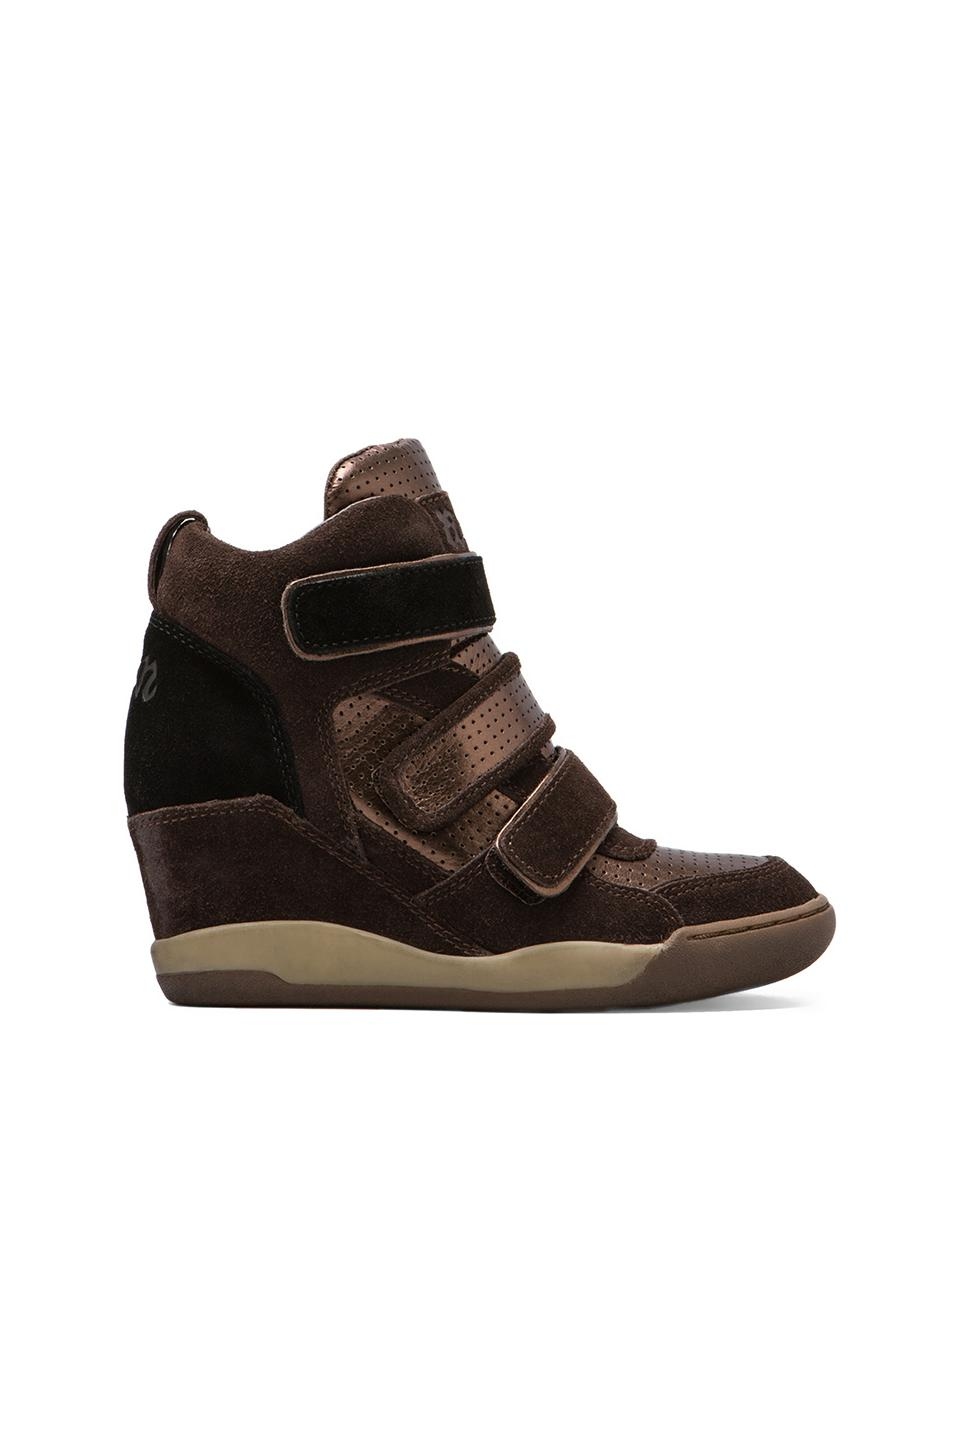 Ash Alex Bis Wedge Sneaker in Wood Ash